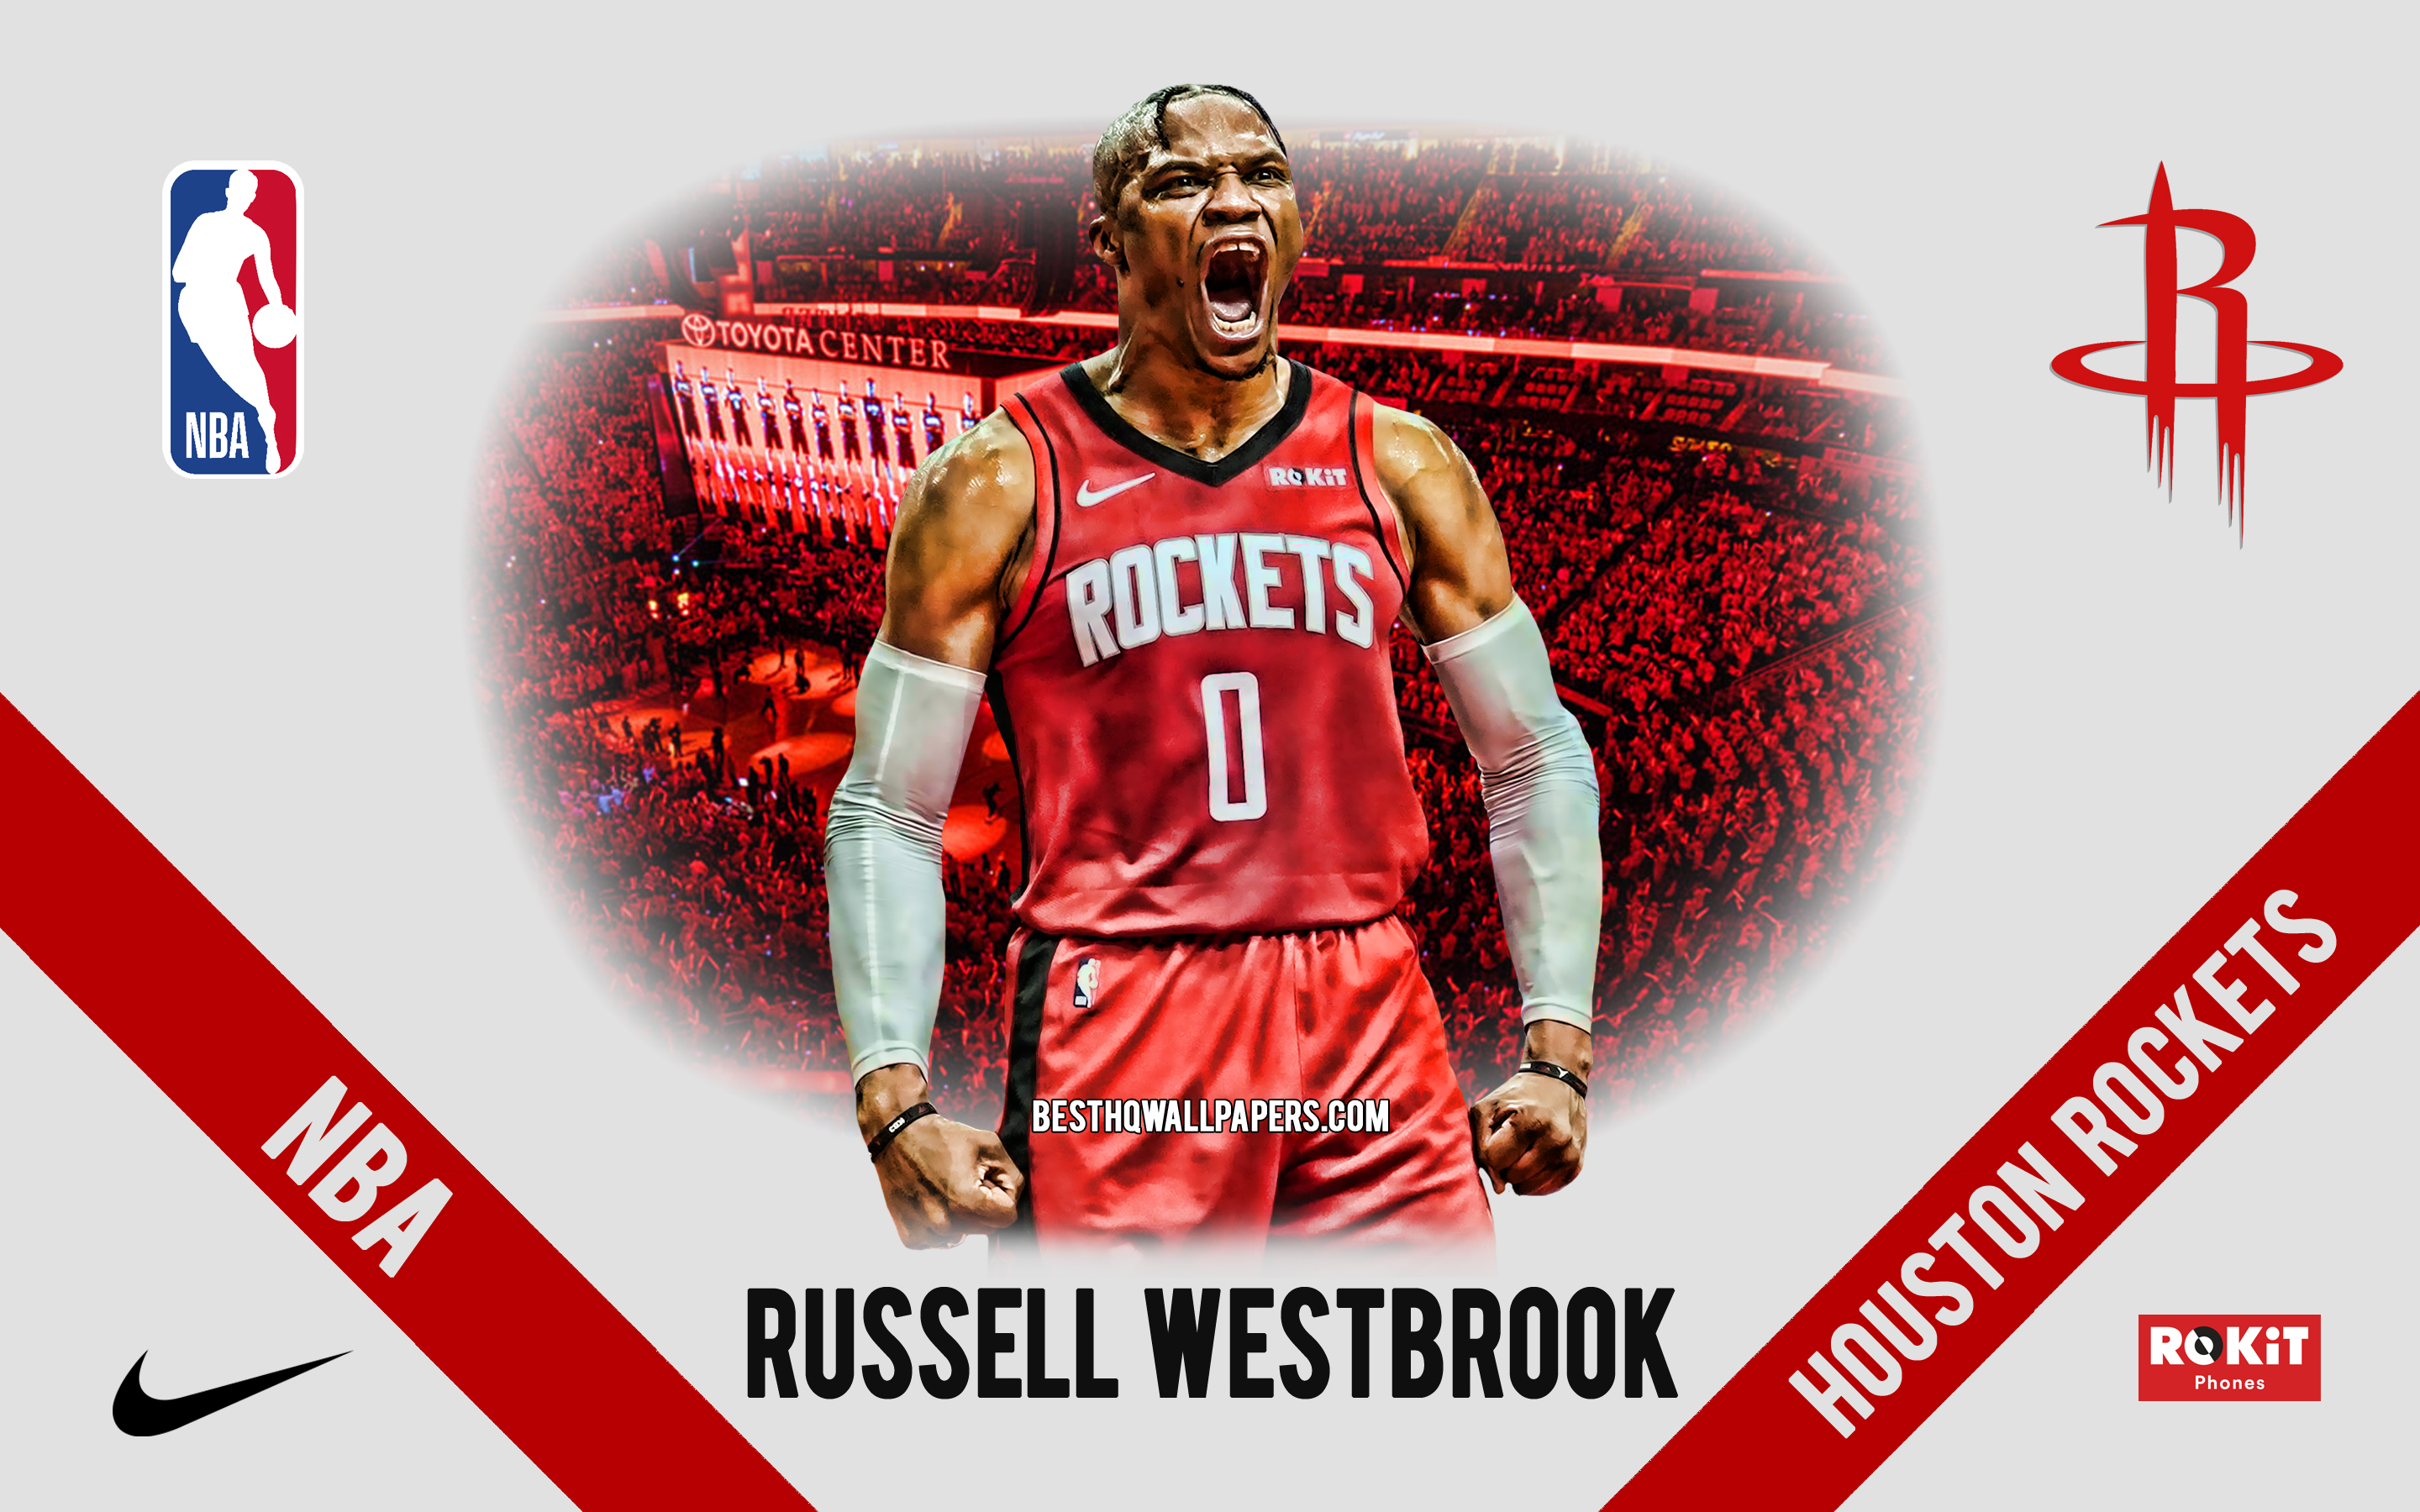 Russell Westbrook, Houston Rockets, American Basketball - Houston Rockets , HD Wallpaper & Backgrounds